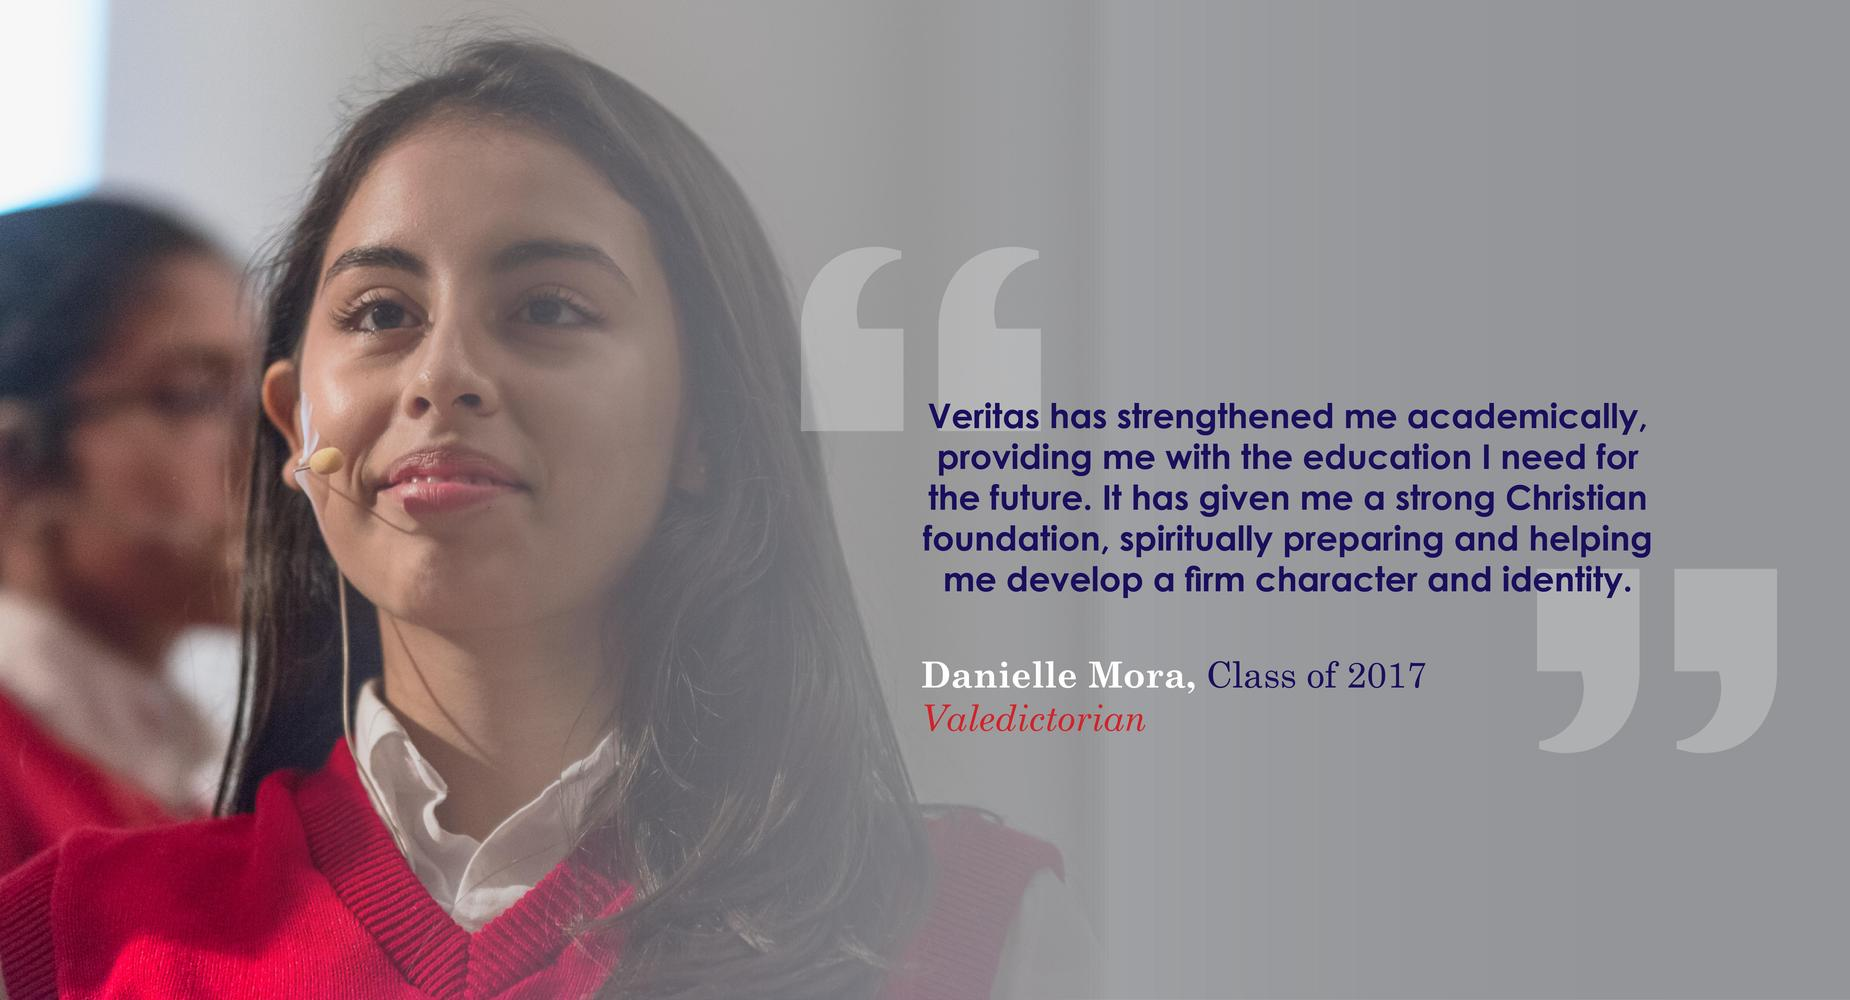 Quote from Valedictorian